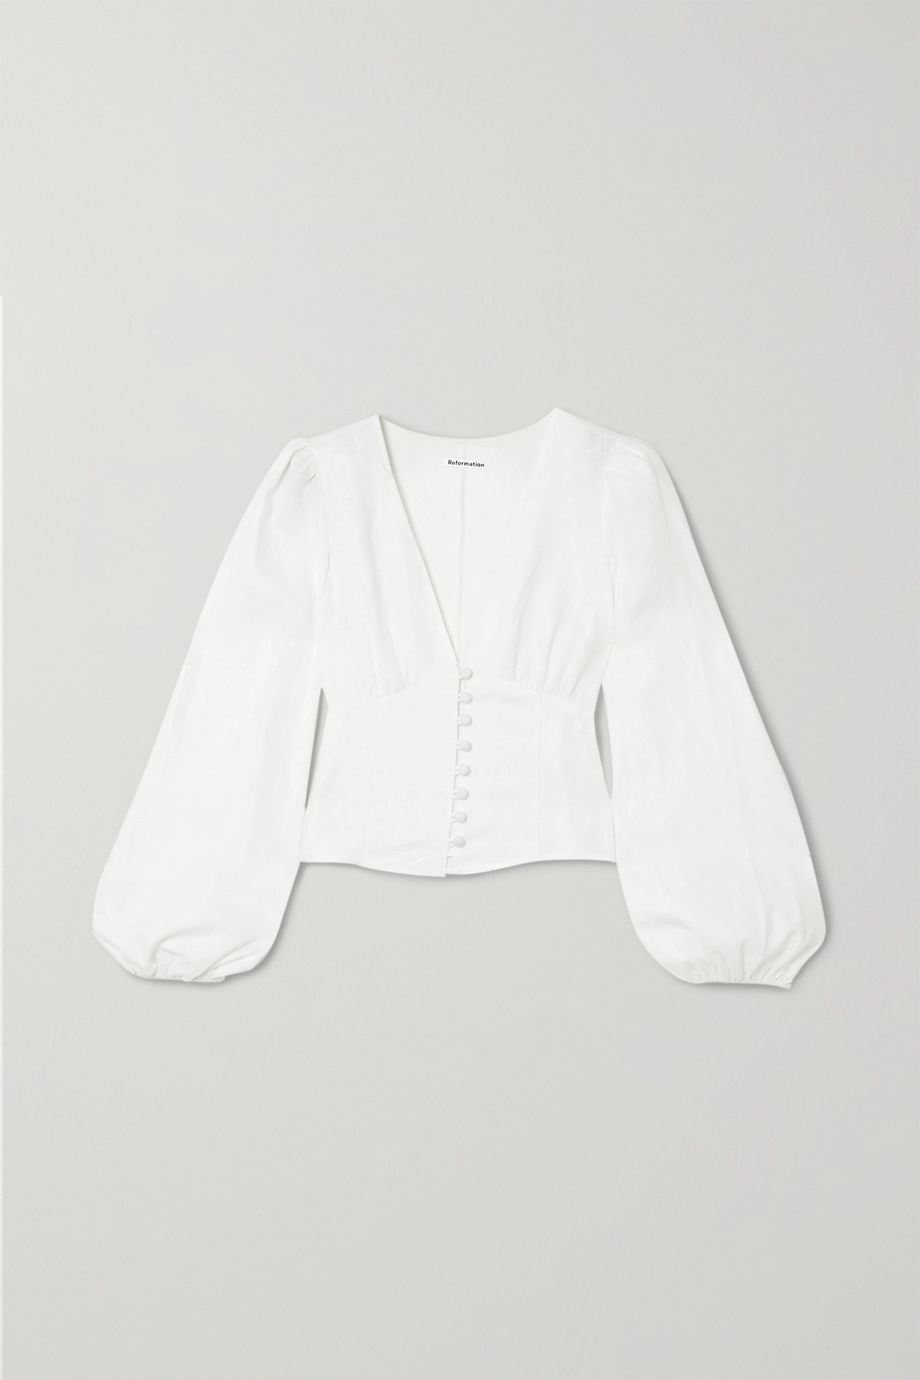 Reformation Aryn linen blouse